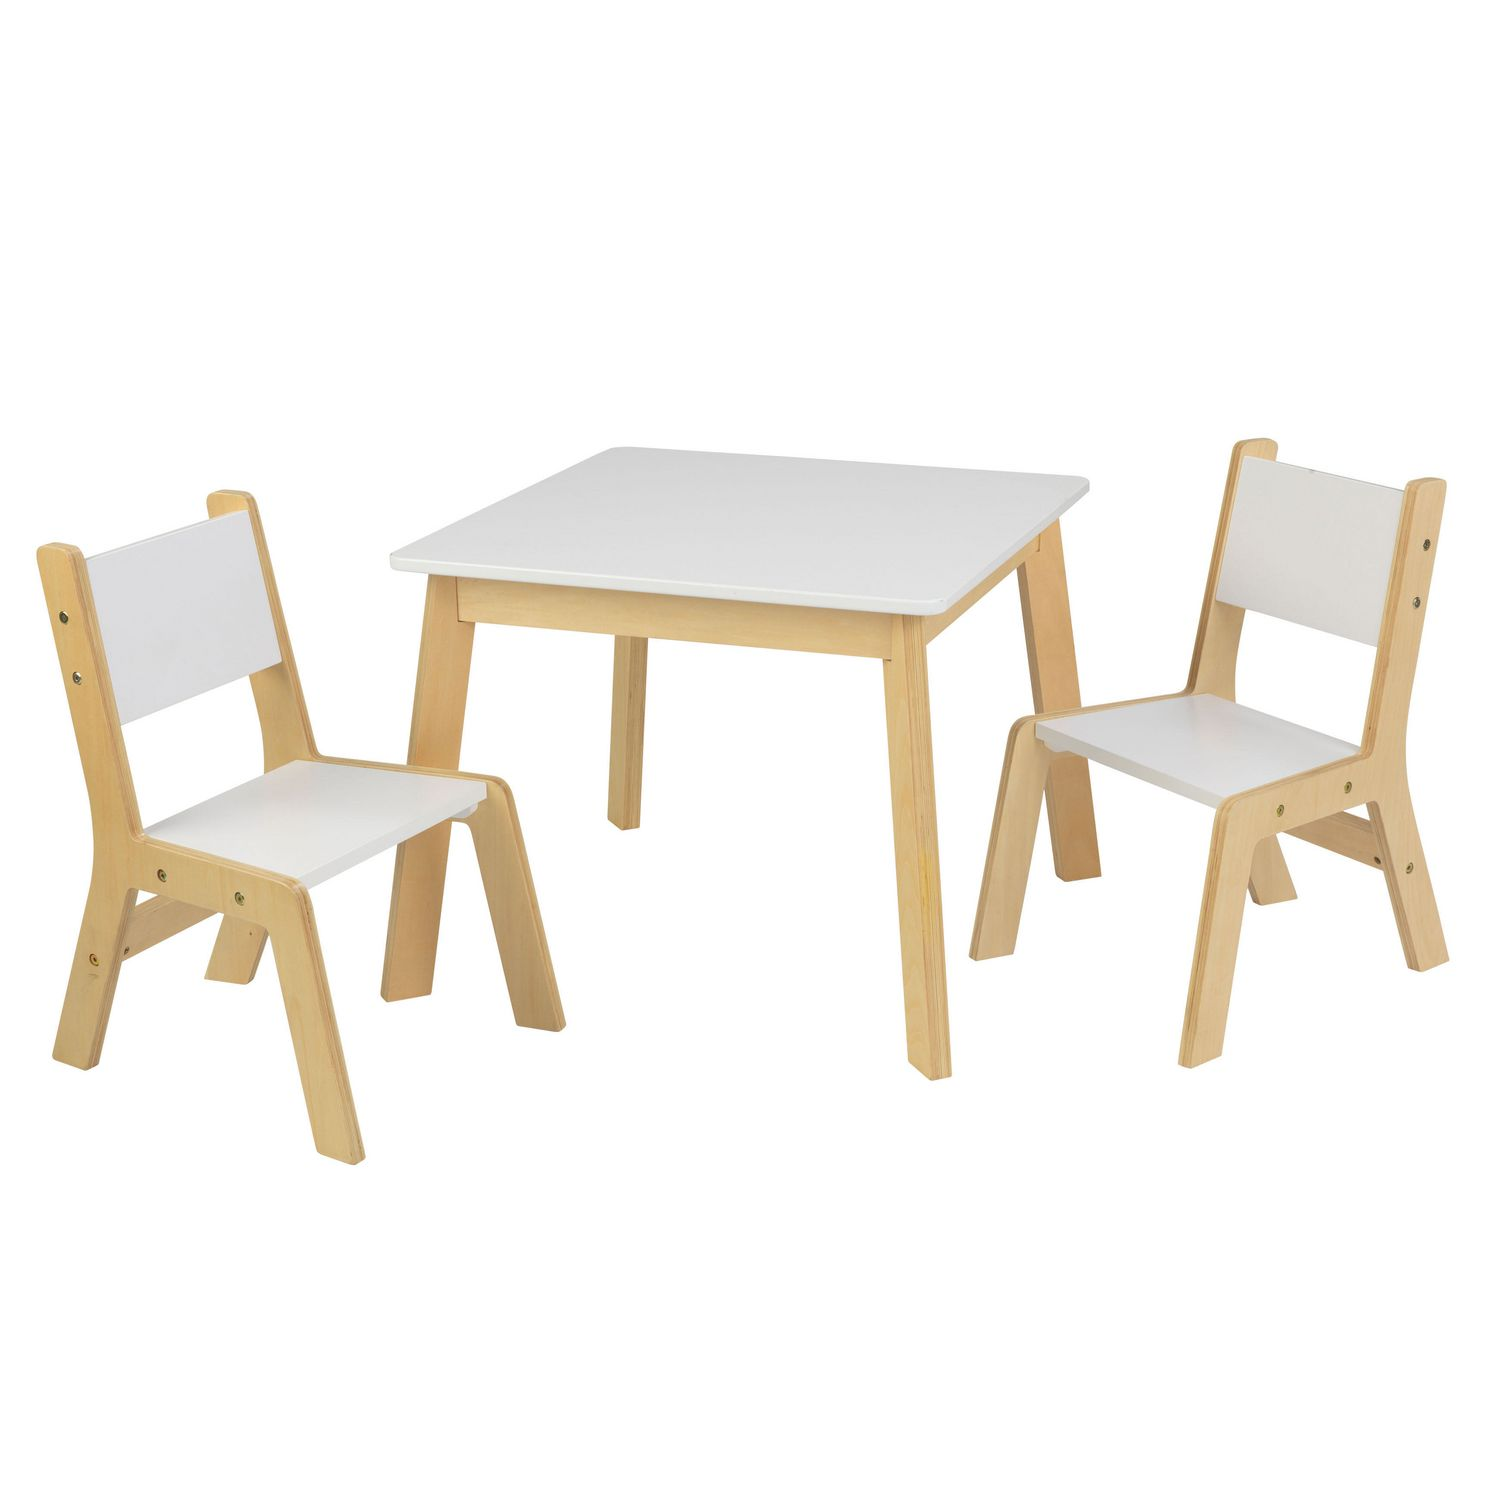 Kidkraft Round Table And 2 Chair Set Whitenatural.Kidkraft Modern Table And 2 Chair Set